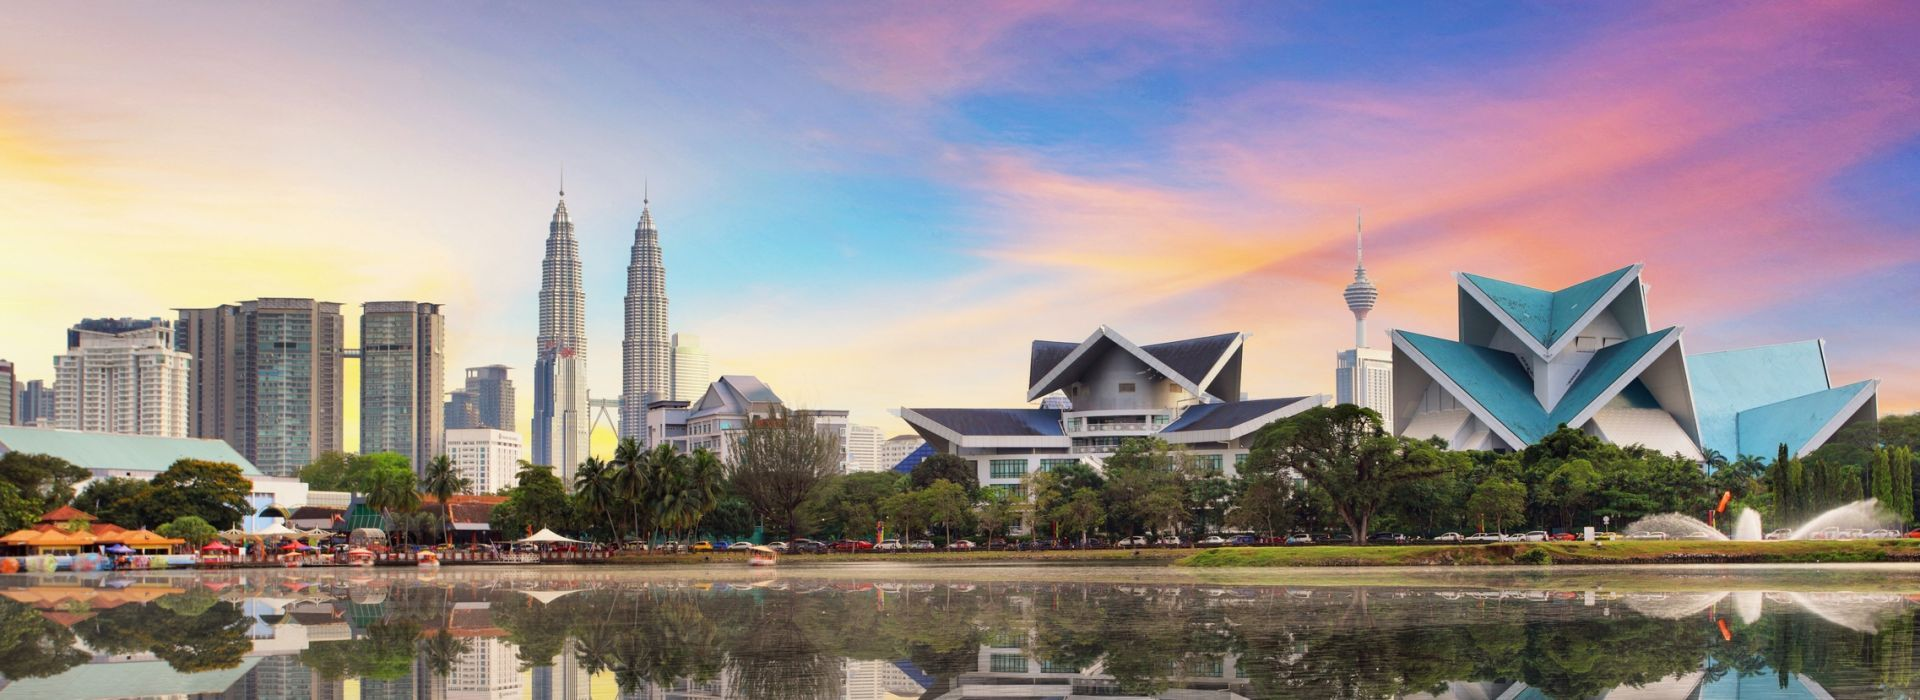 Food, wine, events and nightlife Tours in Kuala Lumpur